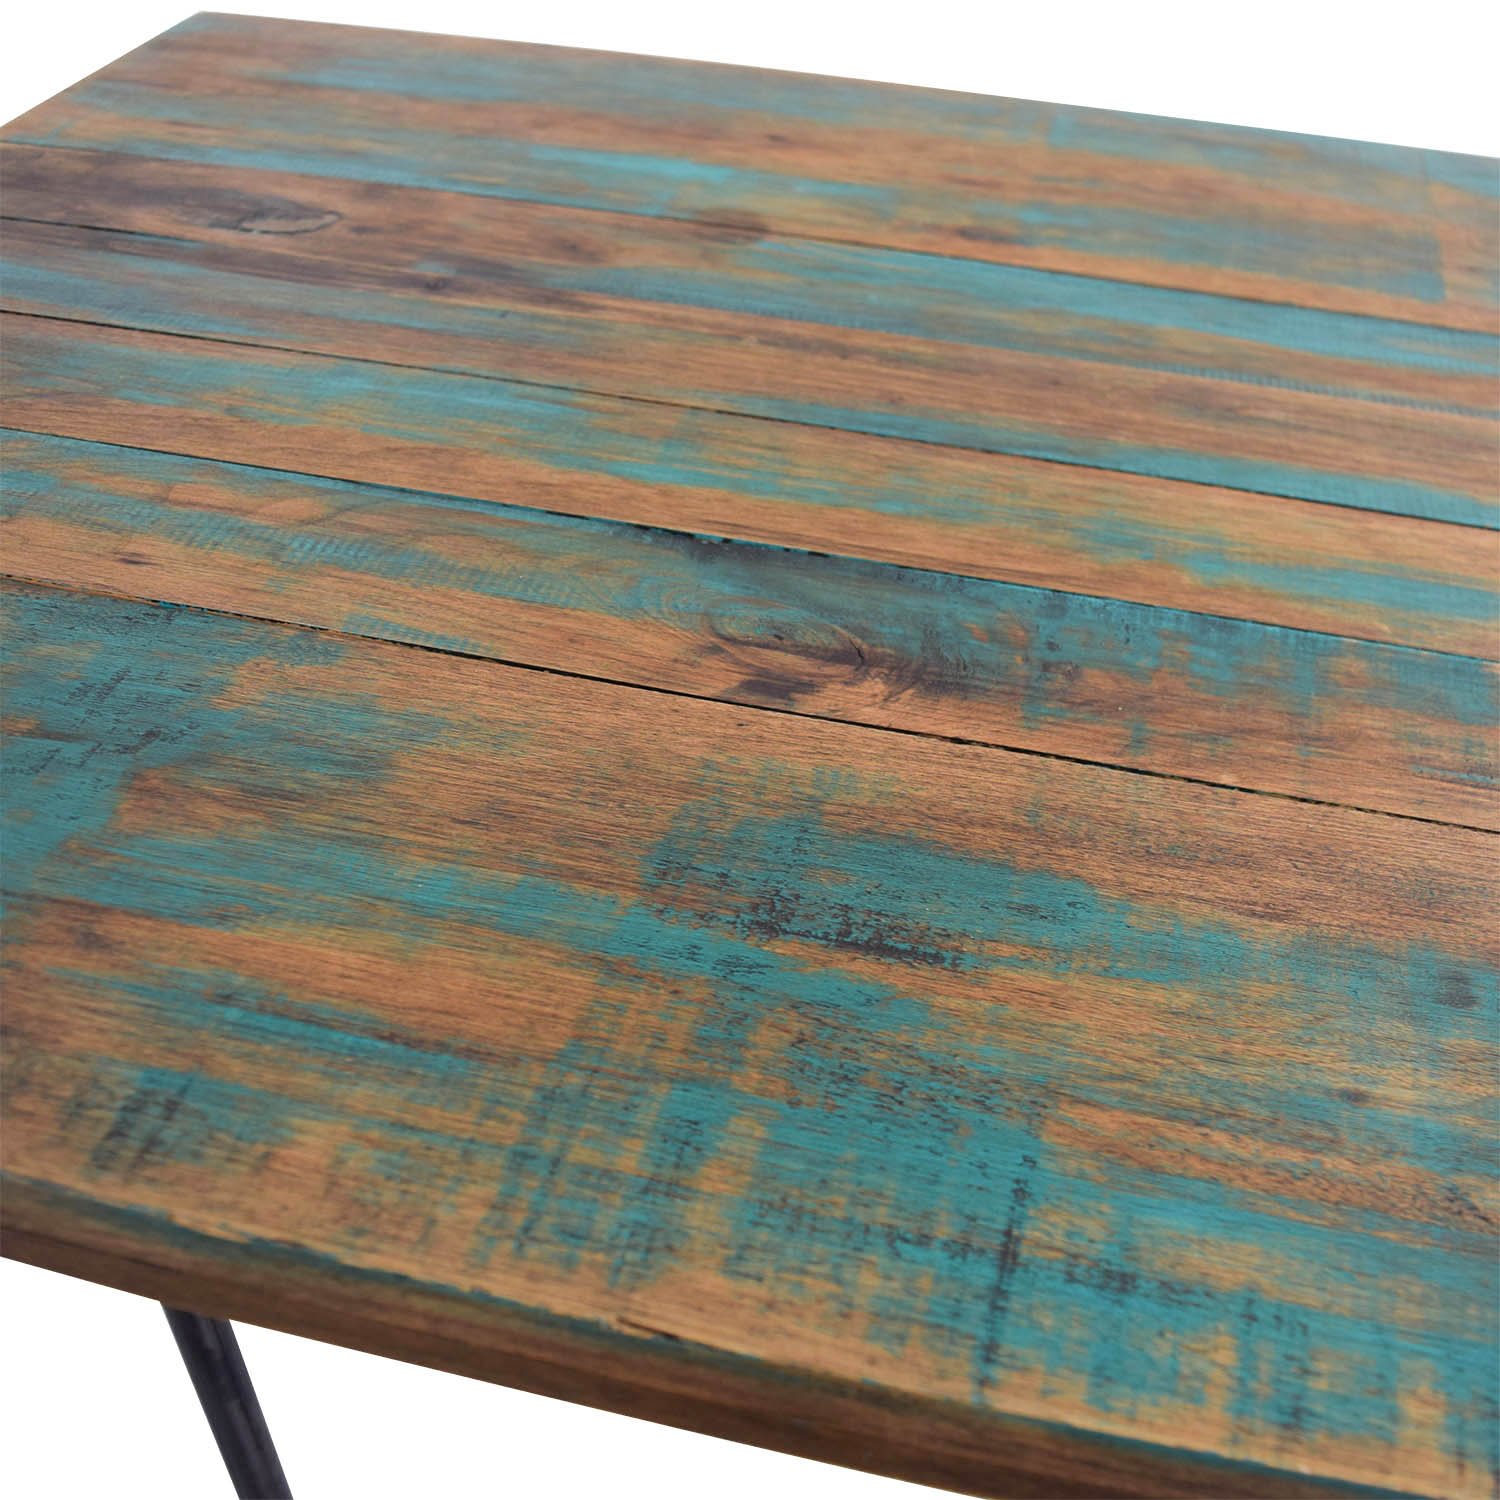 buy A Little of India Industrial Reclaimed Wood Counter Table and Stools A Little of India Dining Sets